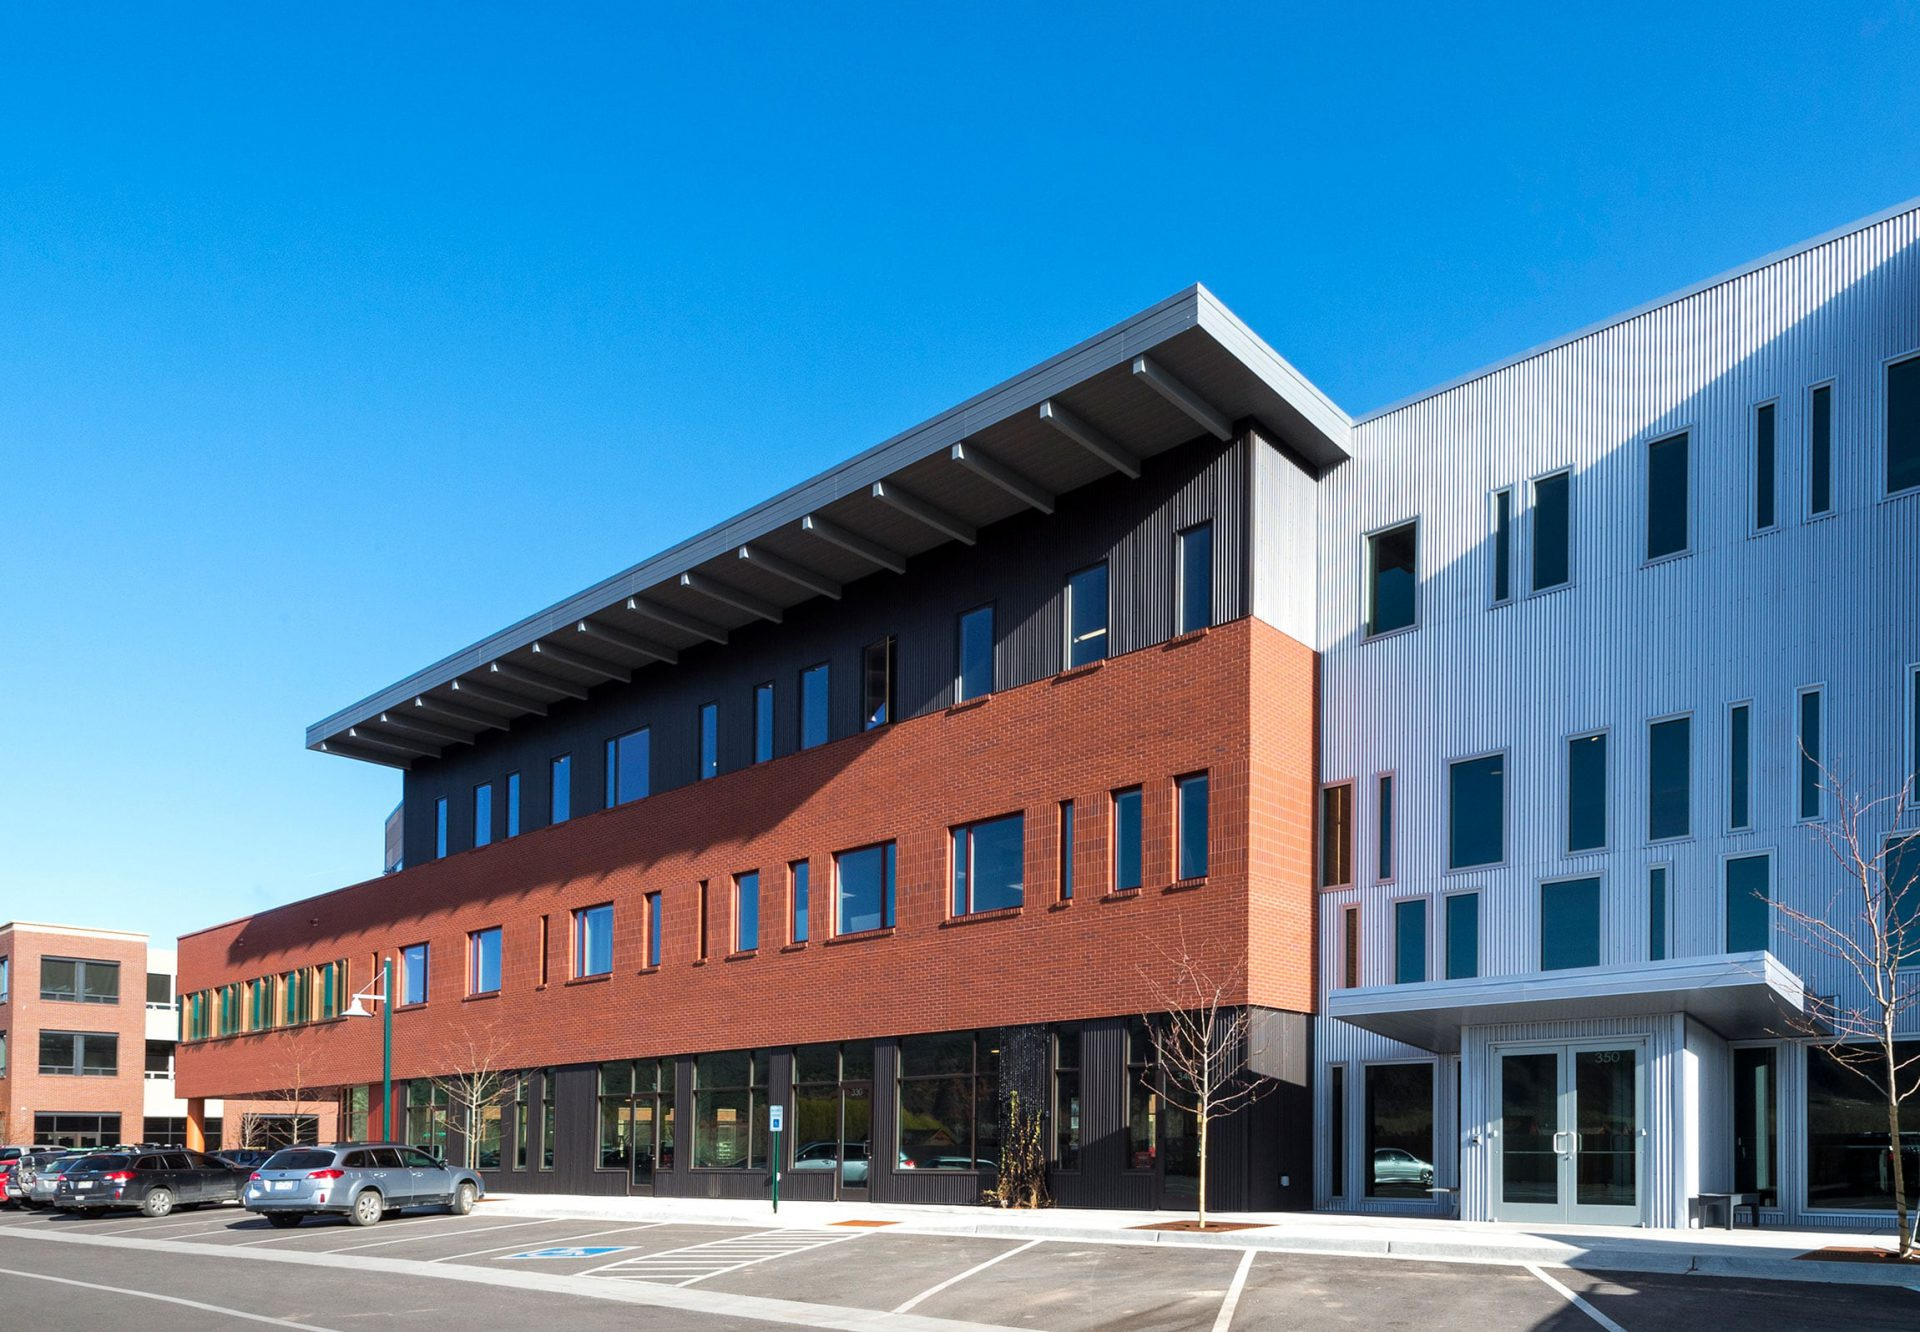 Willits Medical Care building exterior